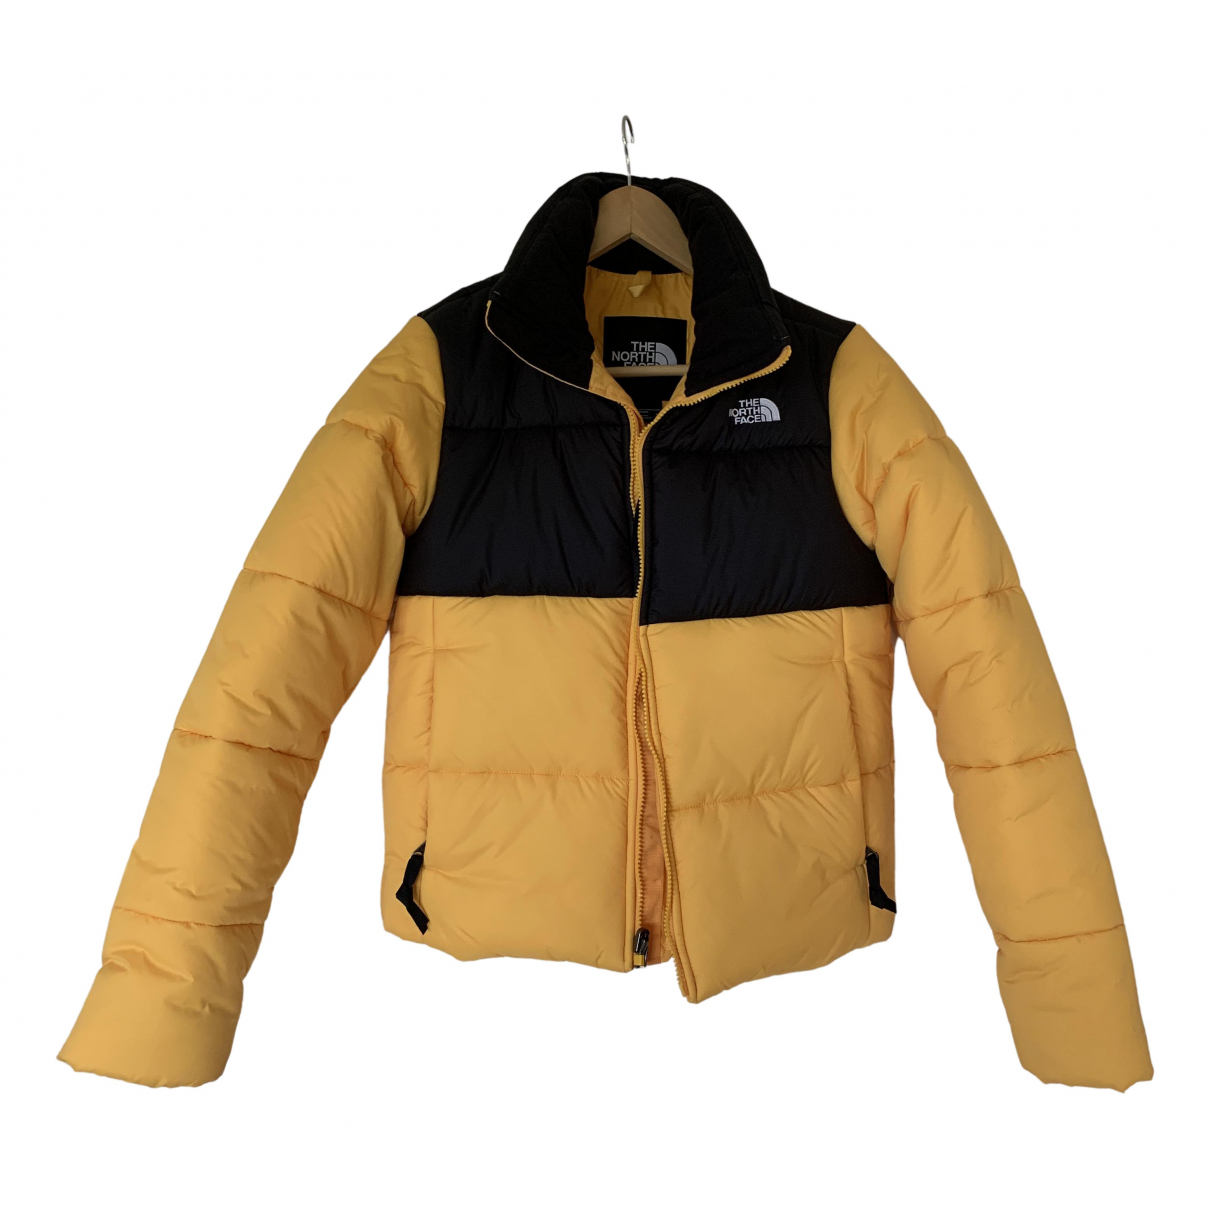 The North Face N Yellow jacket for Women XS International